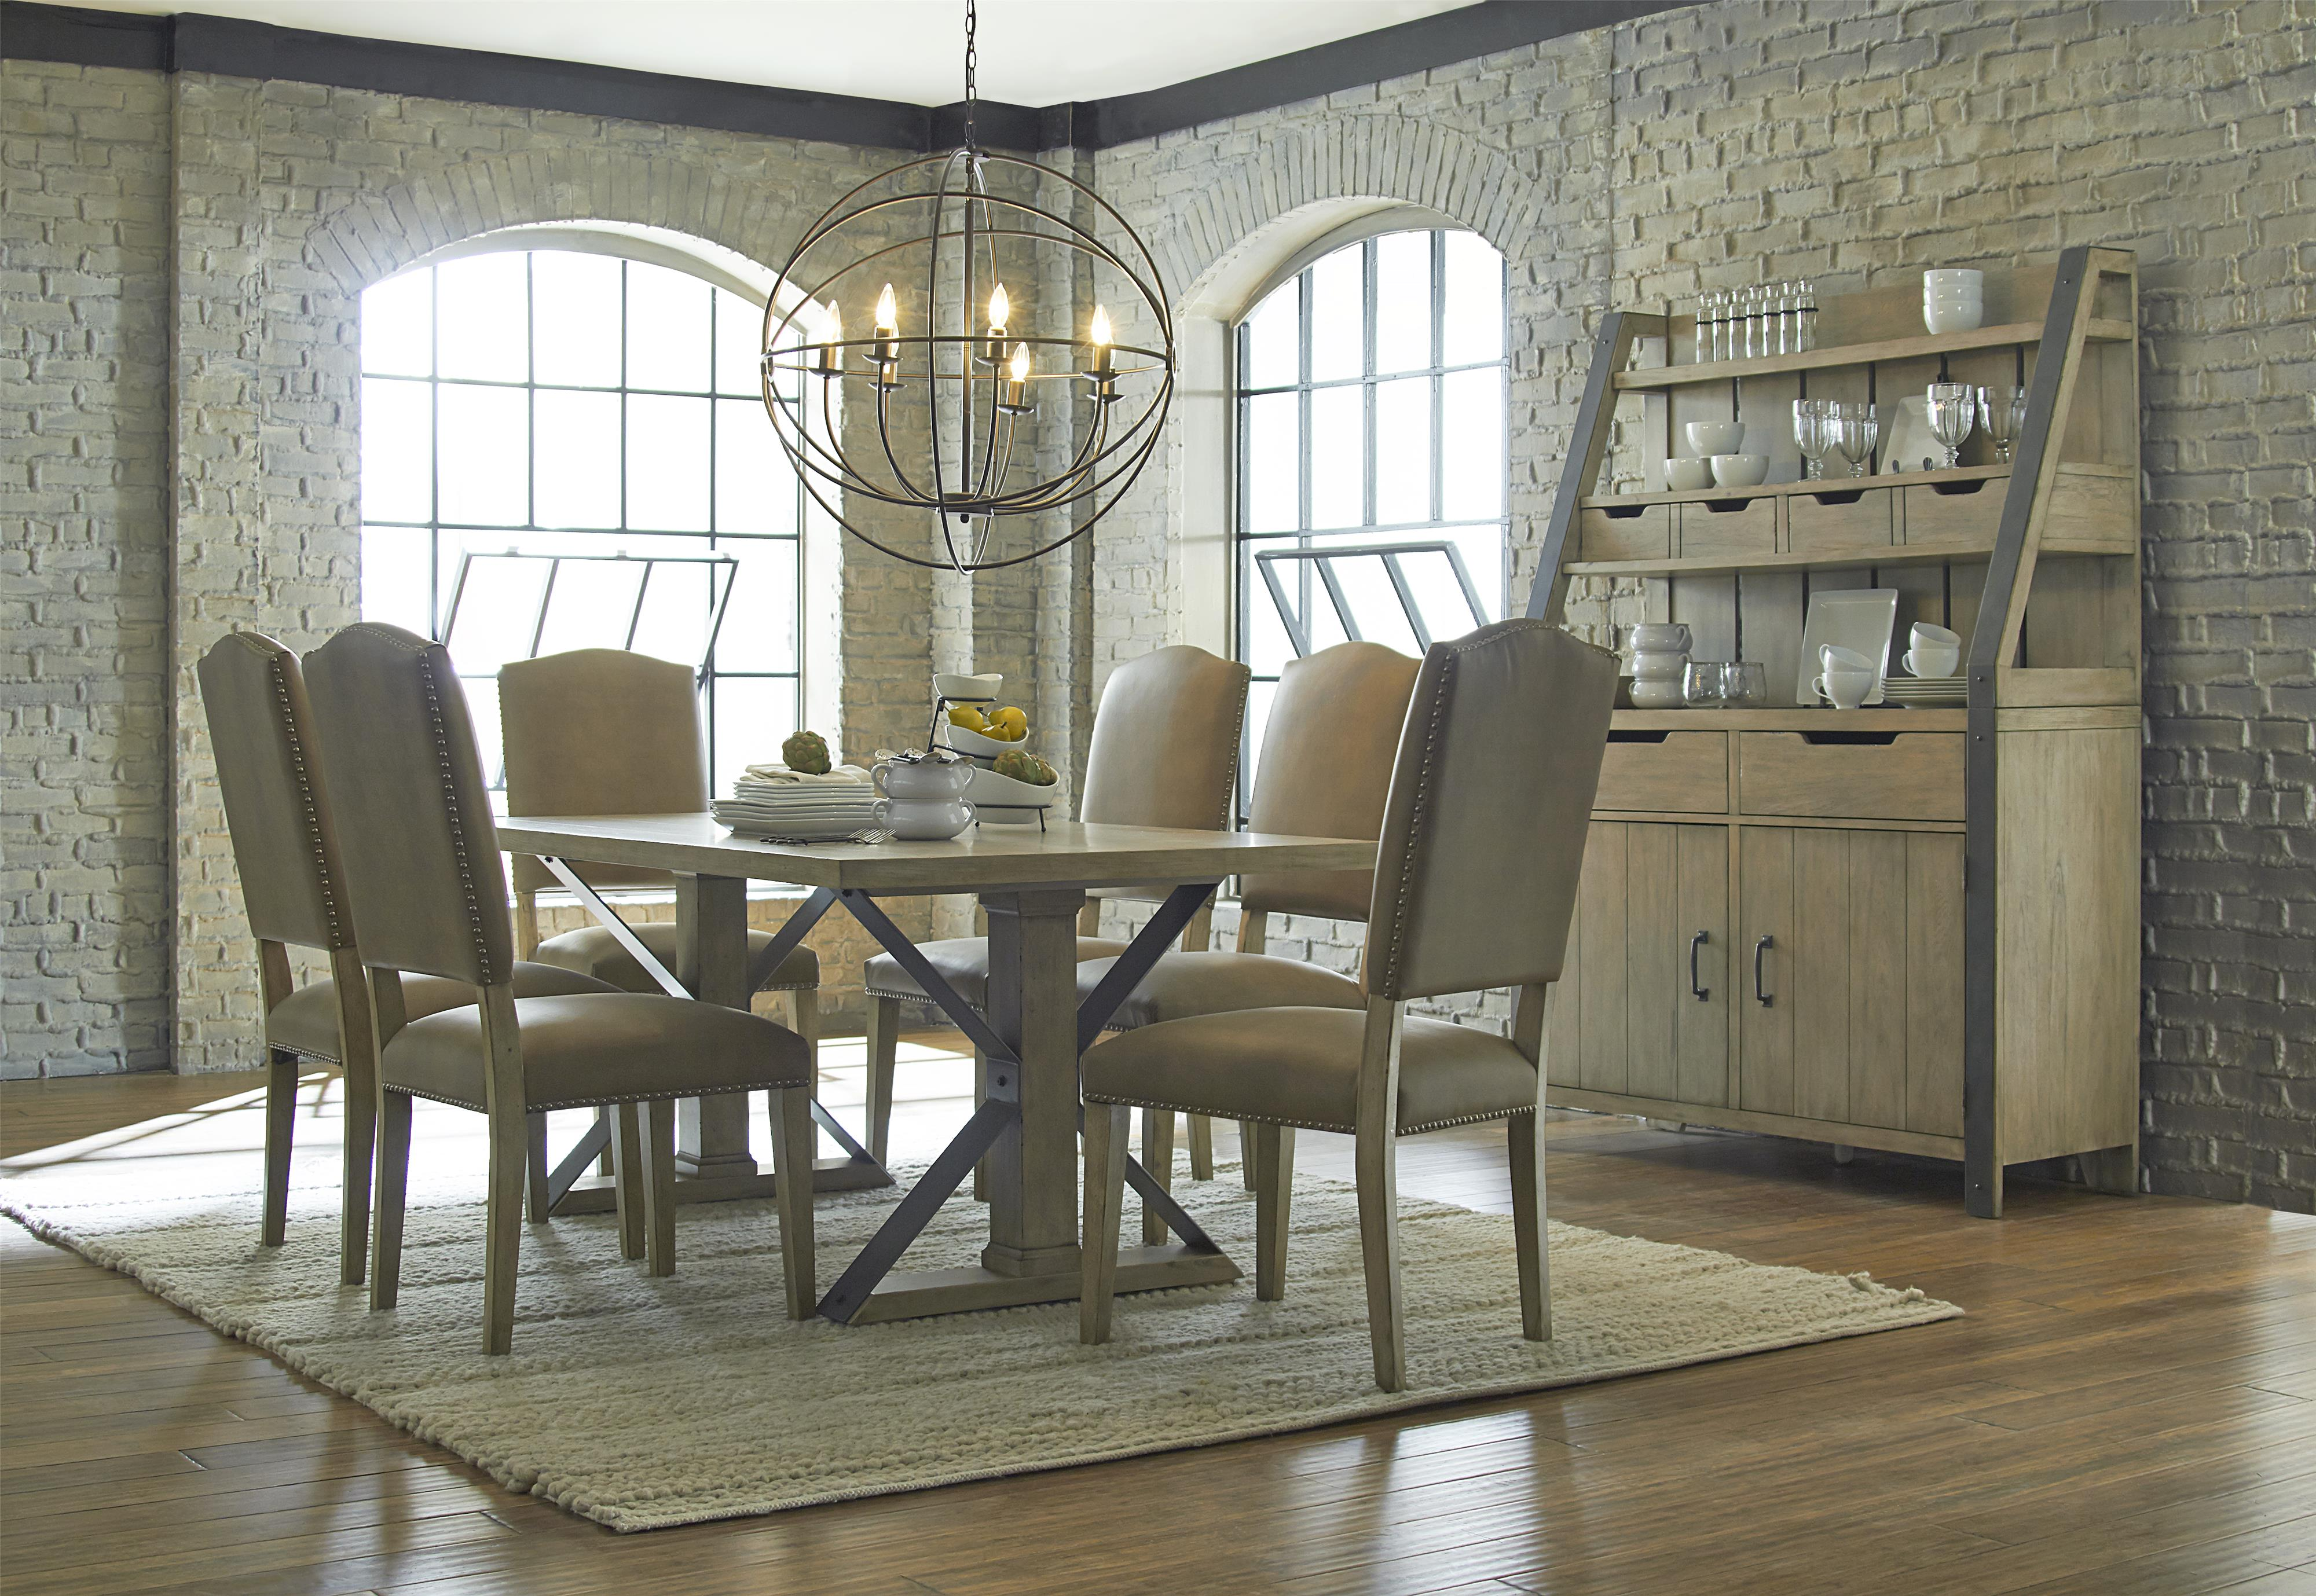 Progressive Furniture Shenandoah Casual Dining Room Group - Item Number: P870-10+6x61+83+82